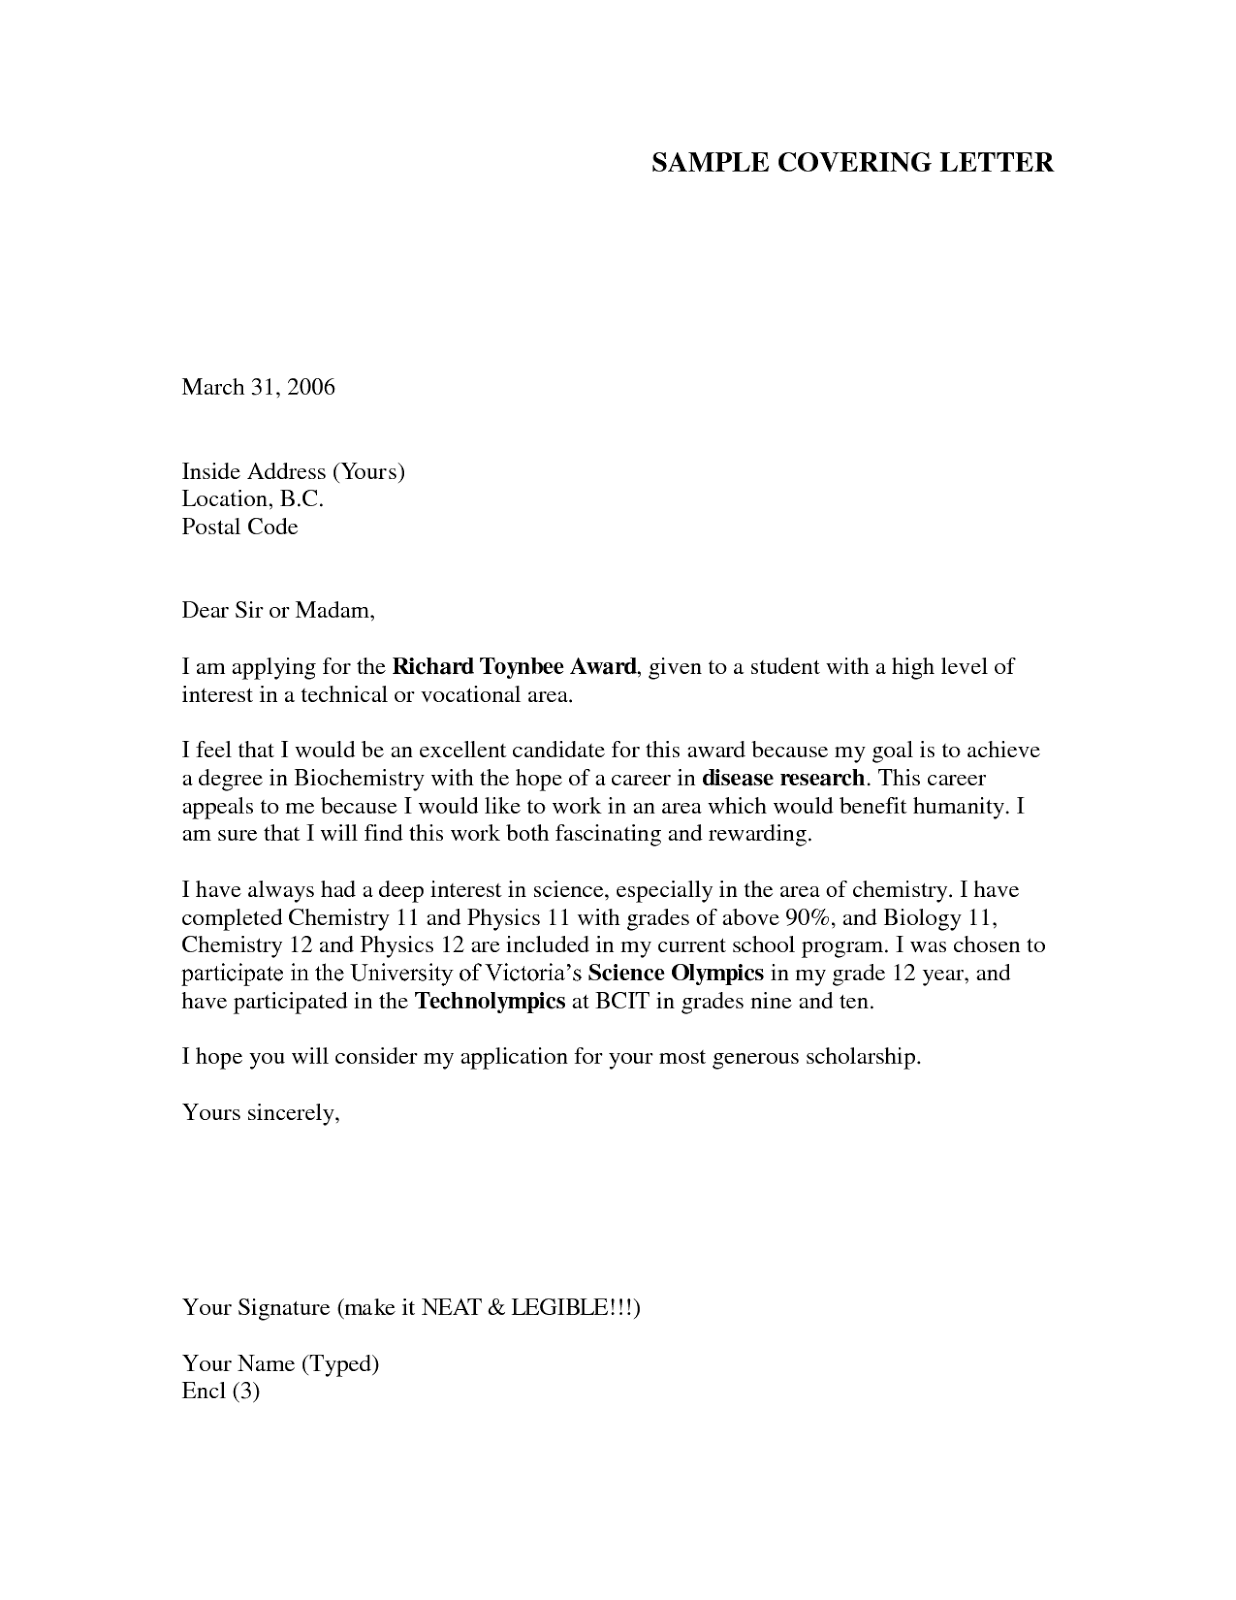 free covering letter template uk – Job Cover Letter Template Uk